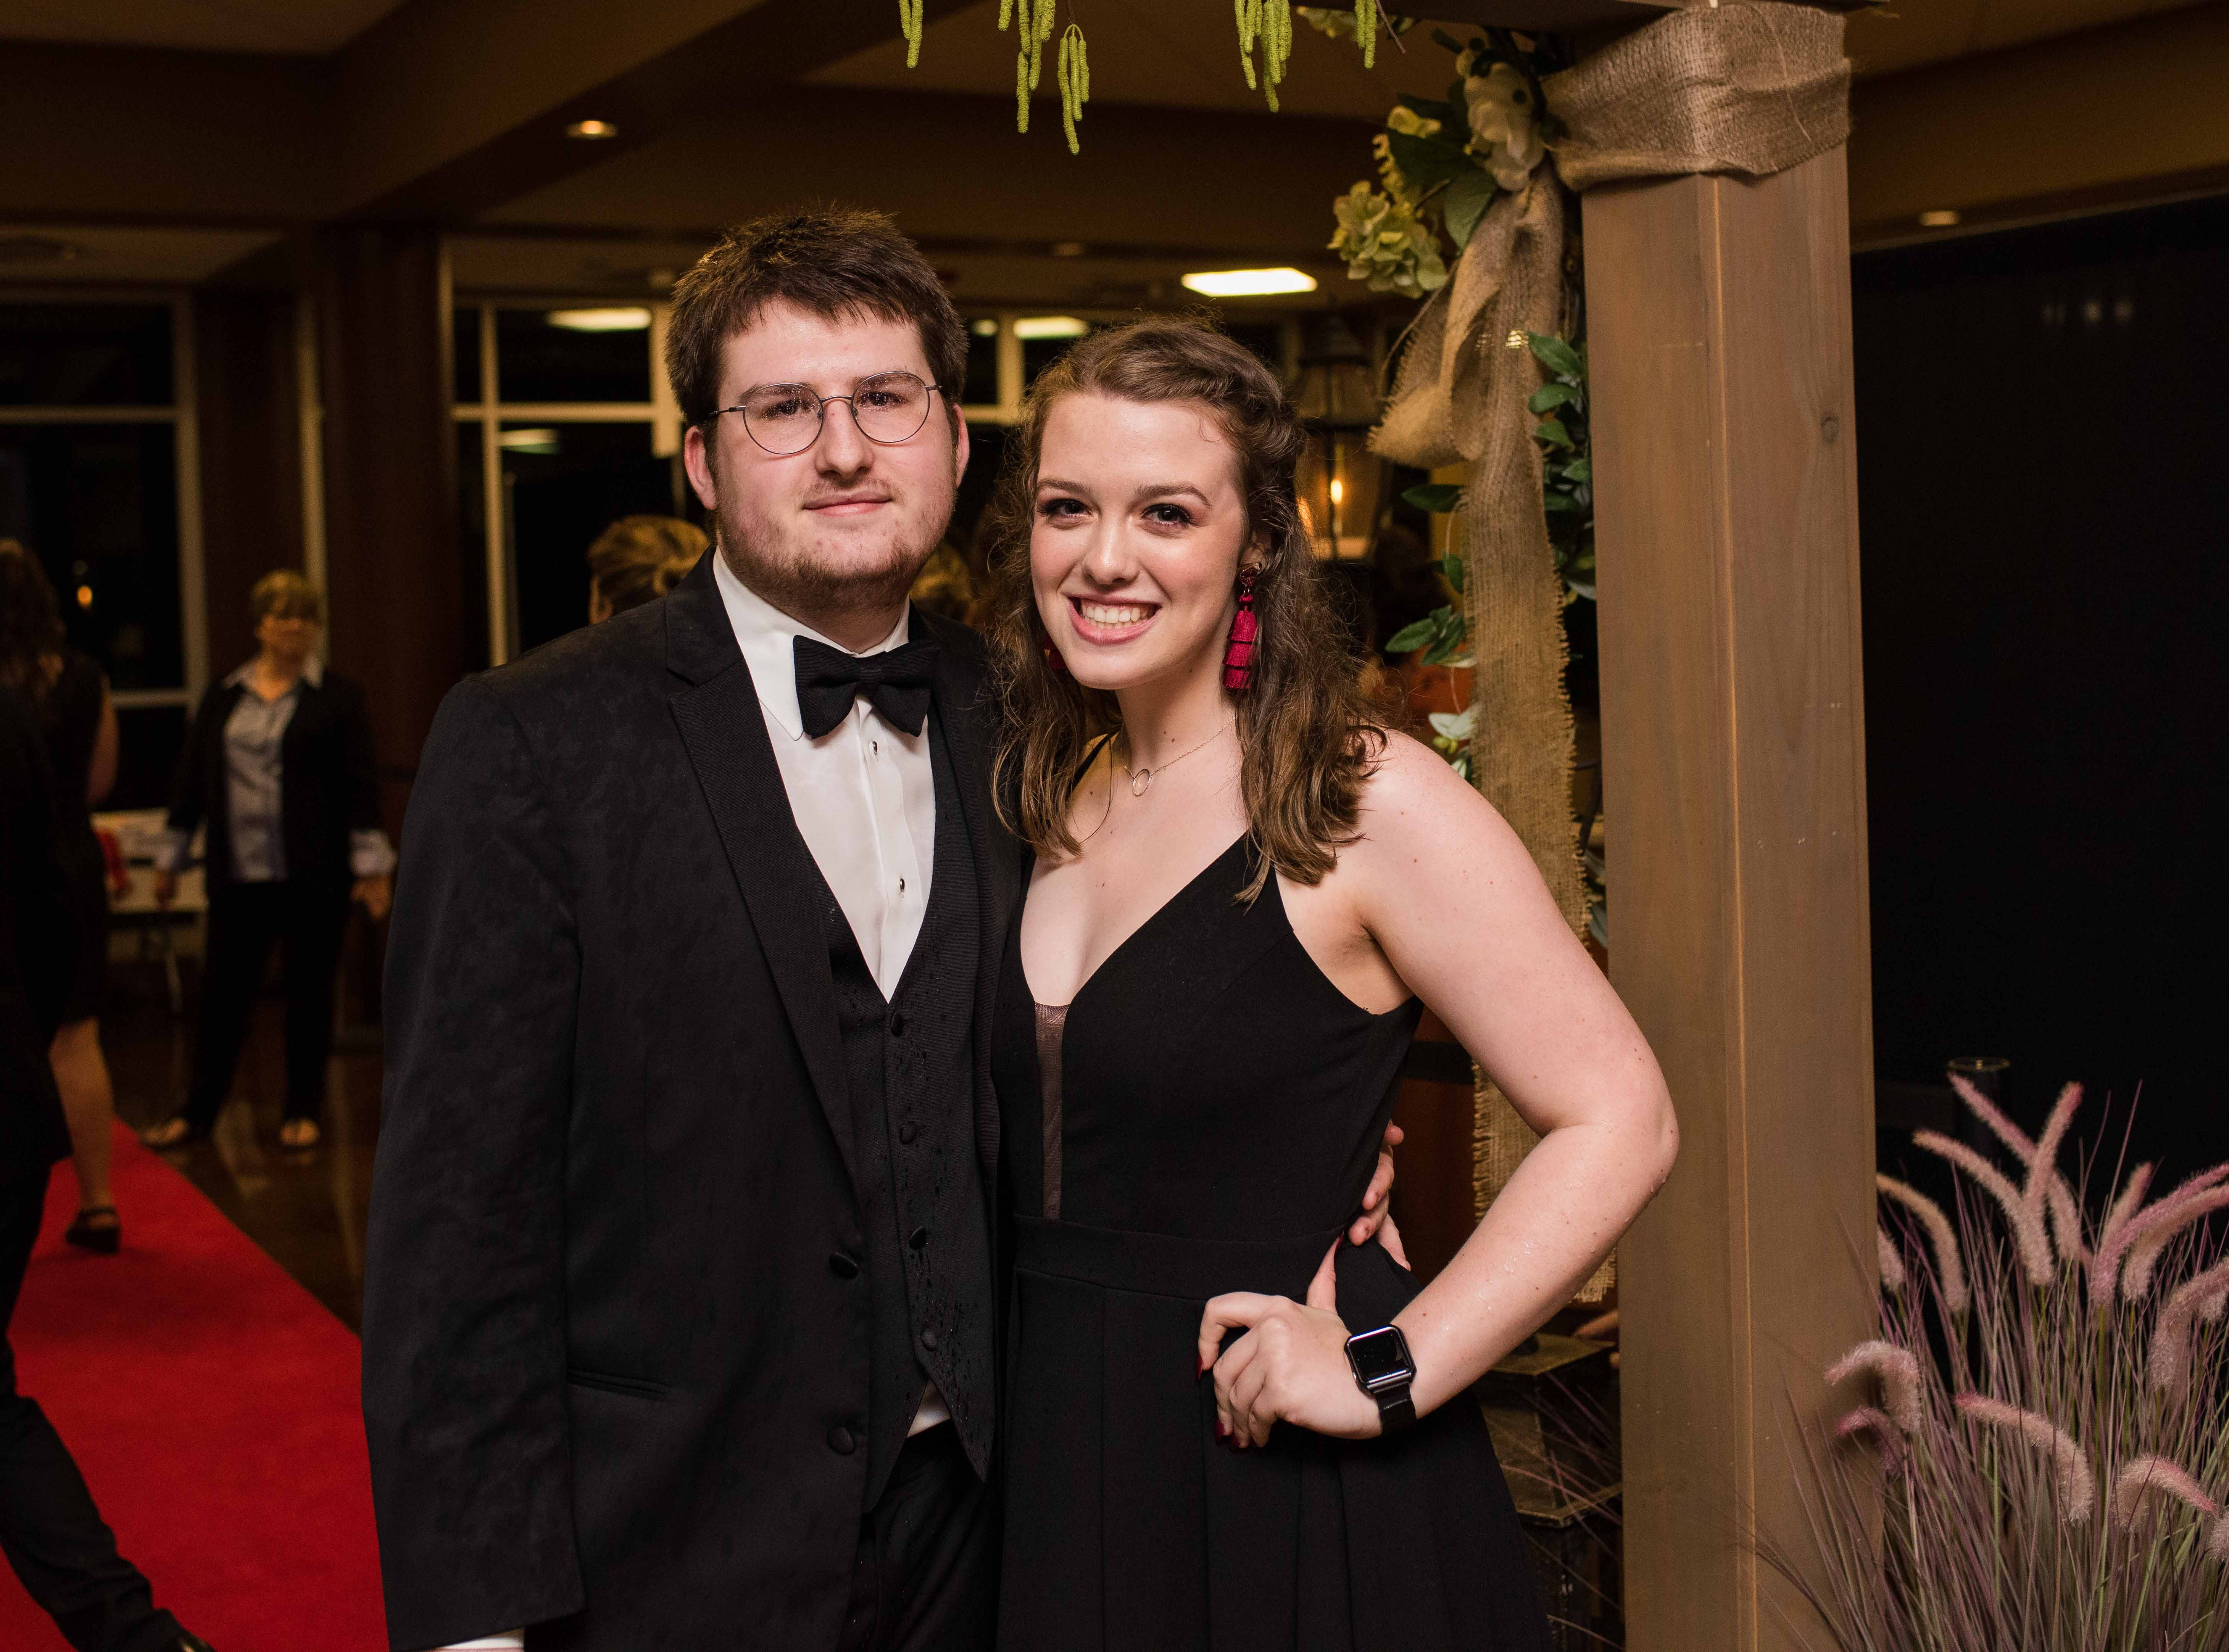 Joshua Hunter and Emily Mayes at Rossview High School prom Saturday night at Valor Hall in Oak Grove, Ky.